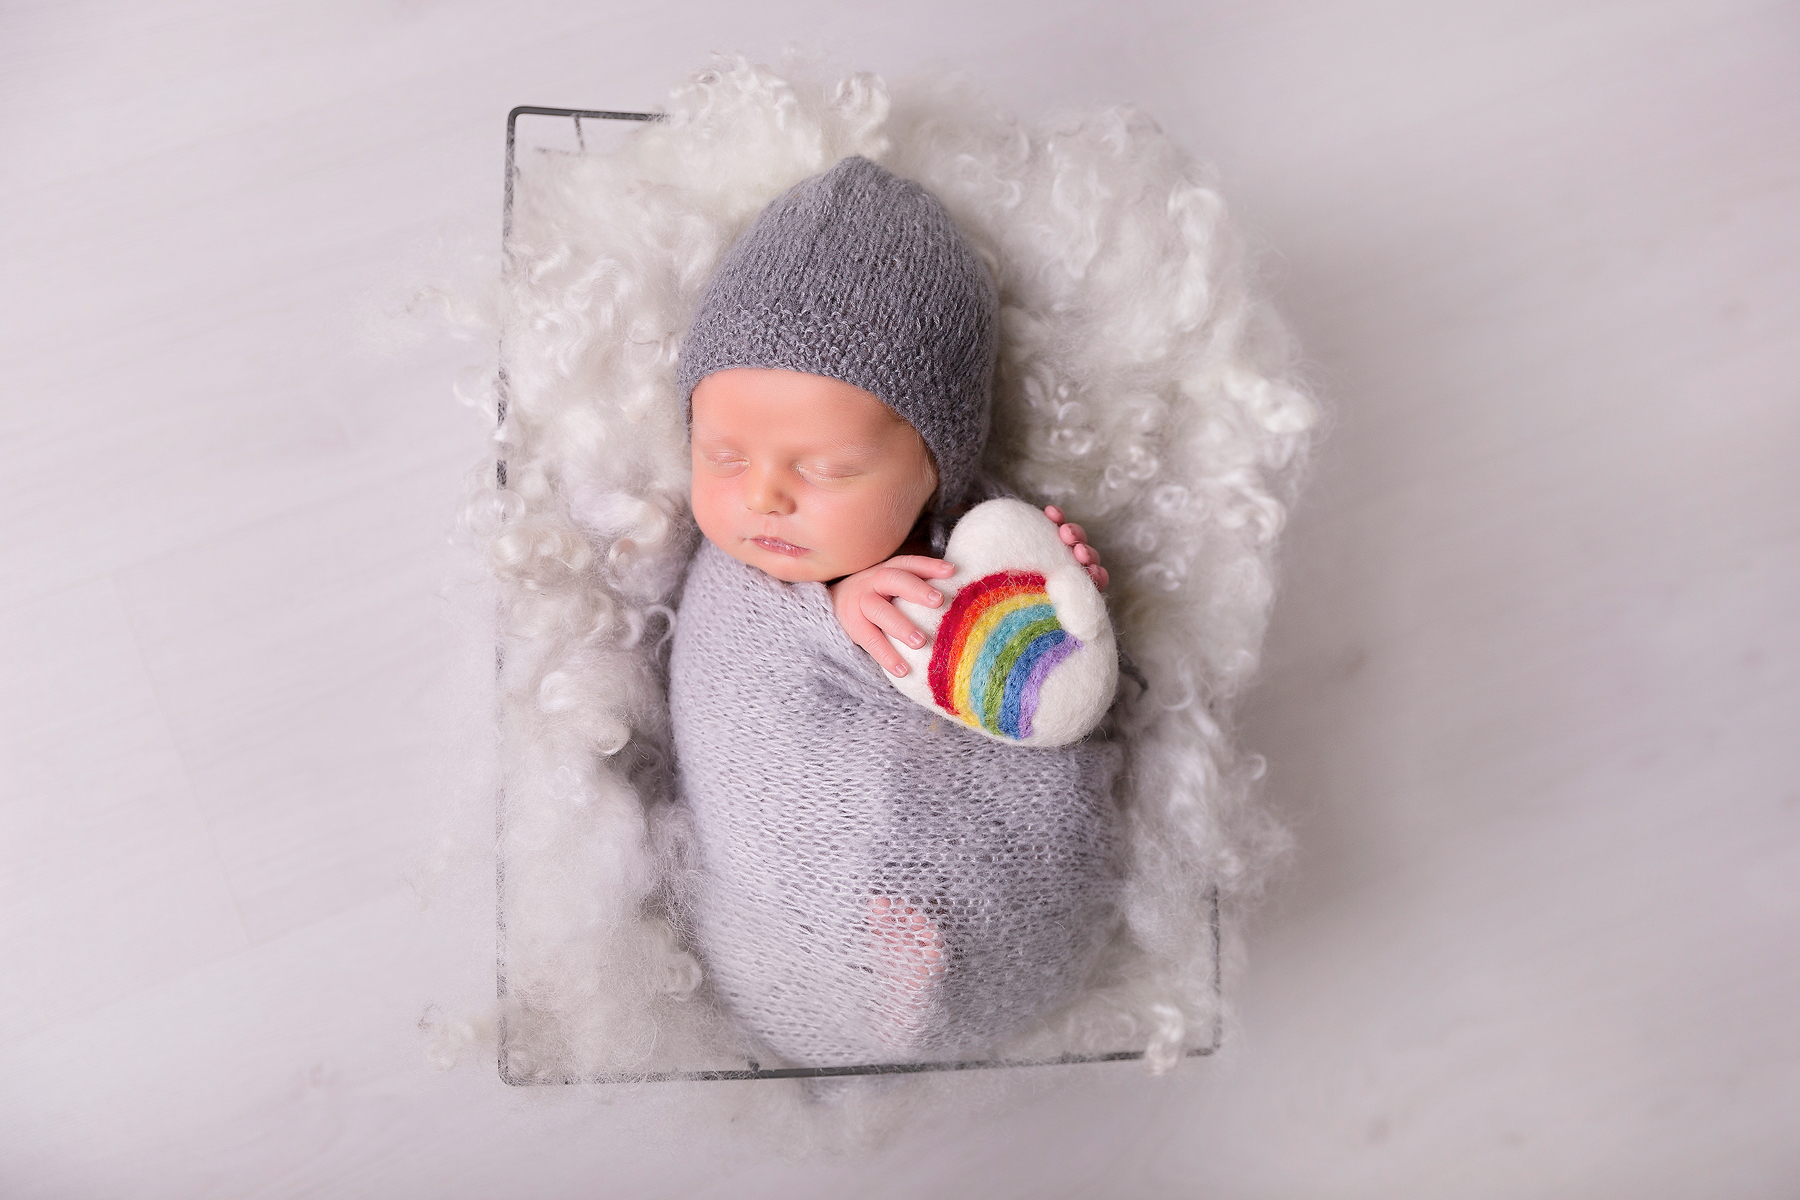 20180829 - Sarah Stoll - Jimmy_Newborn37